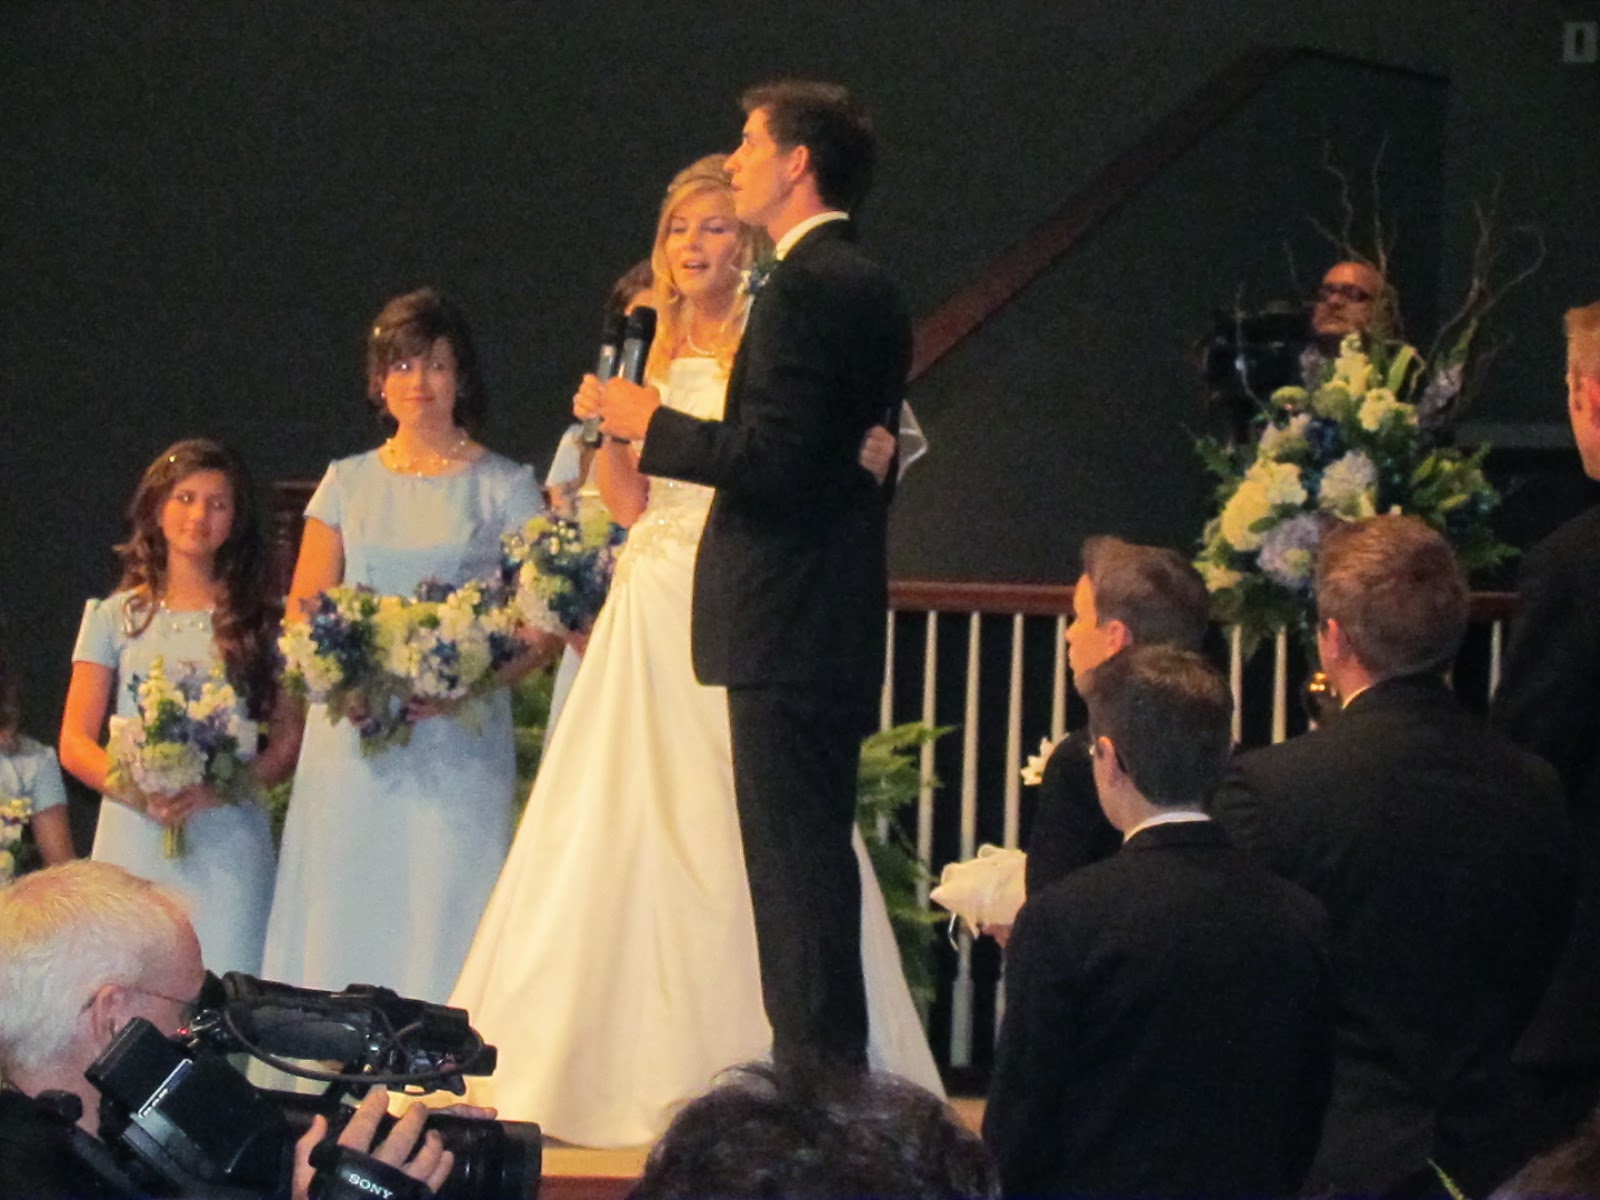 Erin Bates and Chad Paine Wedding